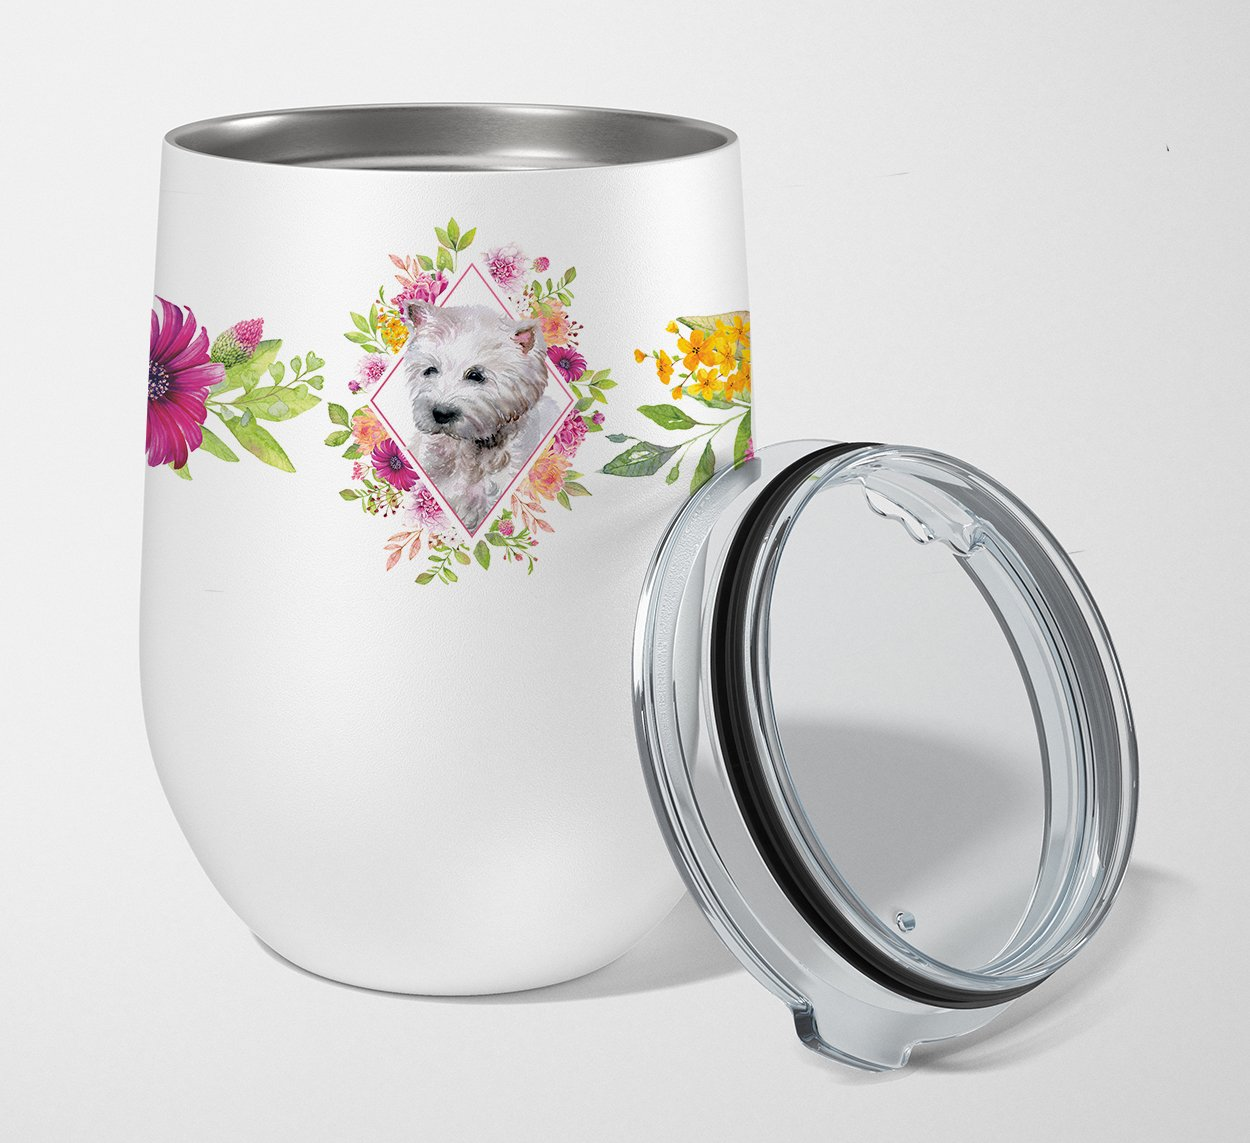 West Highland White Terrier Pink Flowers Stainless Steel 12 oz Stemless Wine Glass CK4193TBL12 by Caroline's Treasures